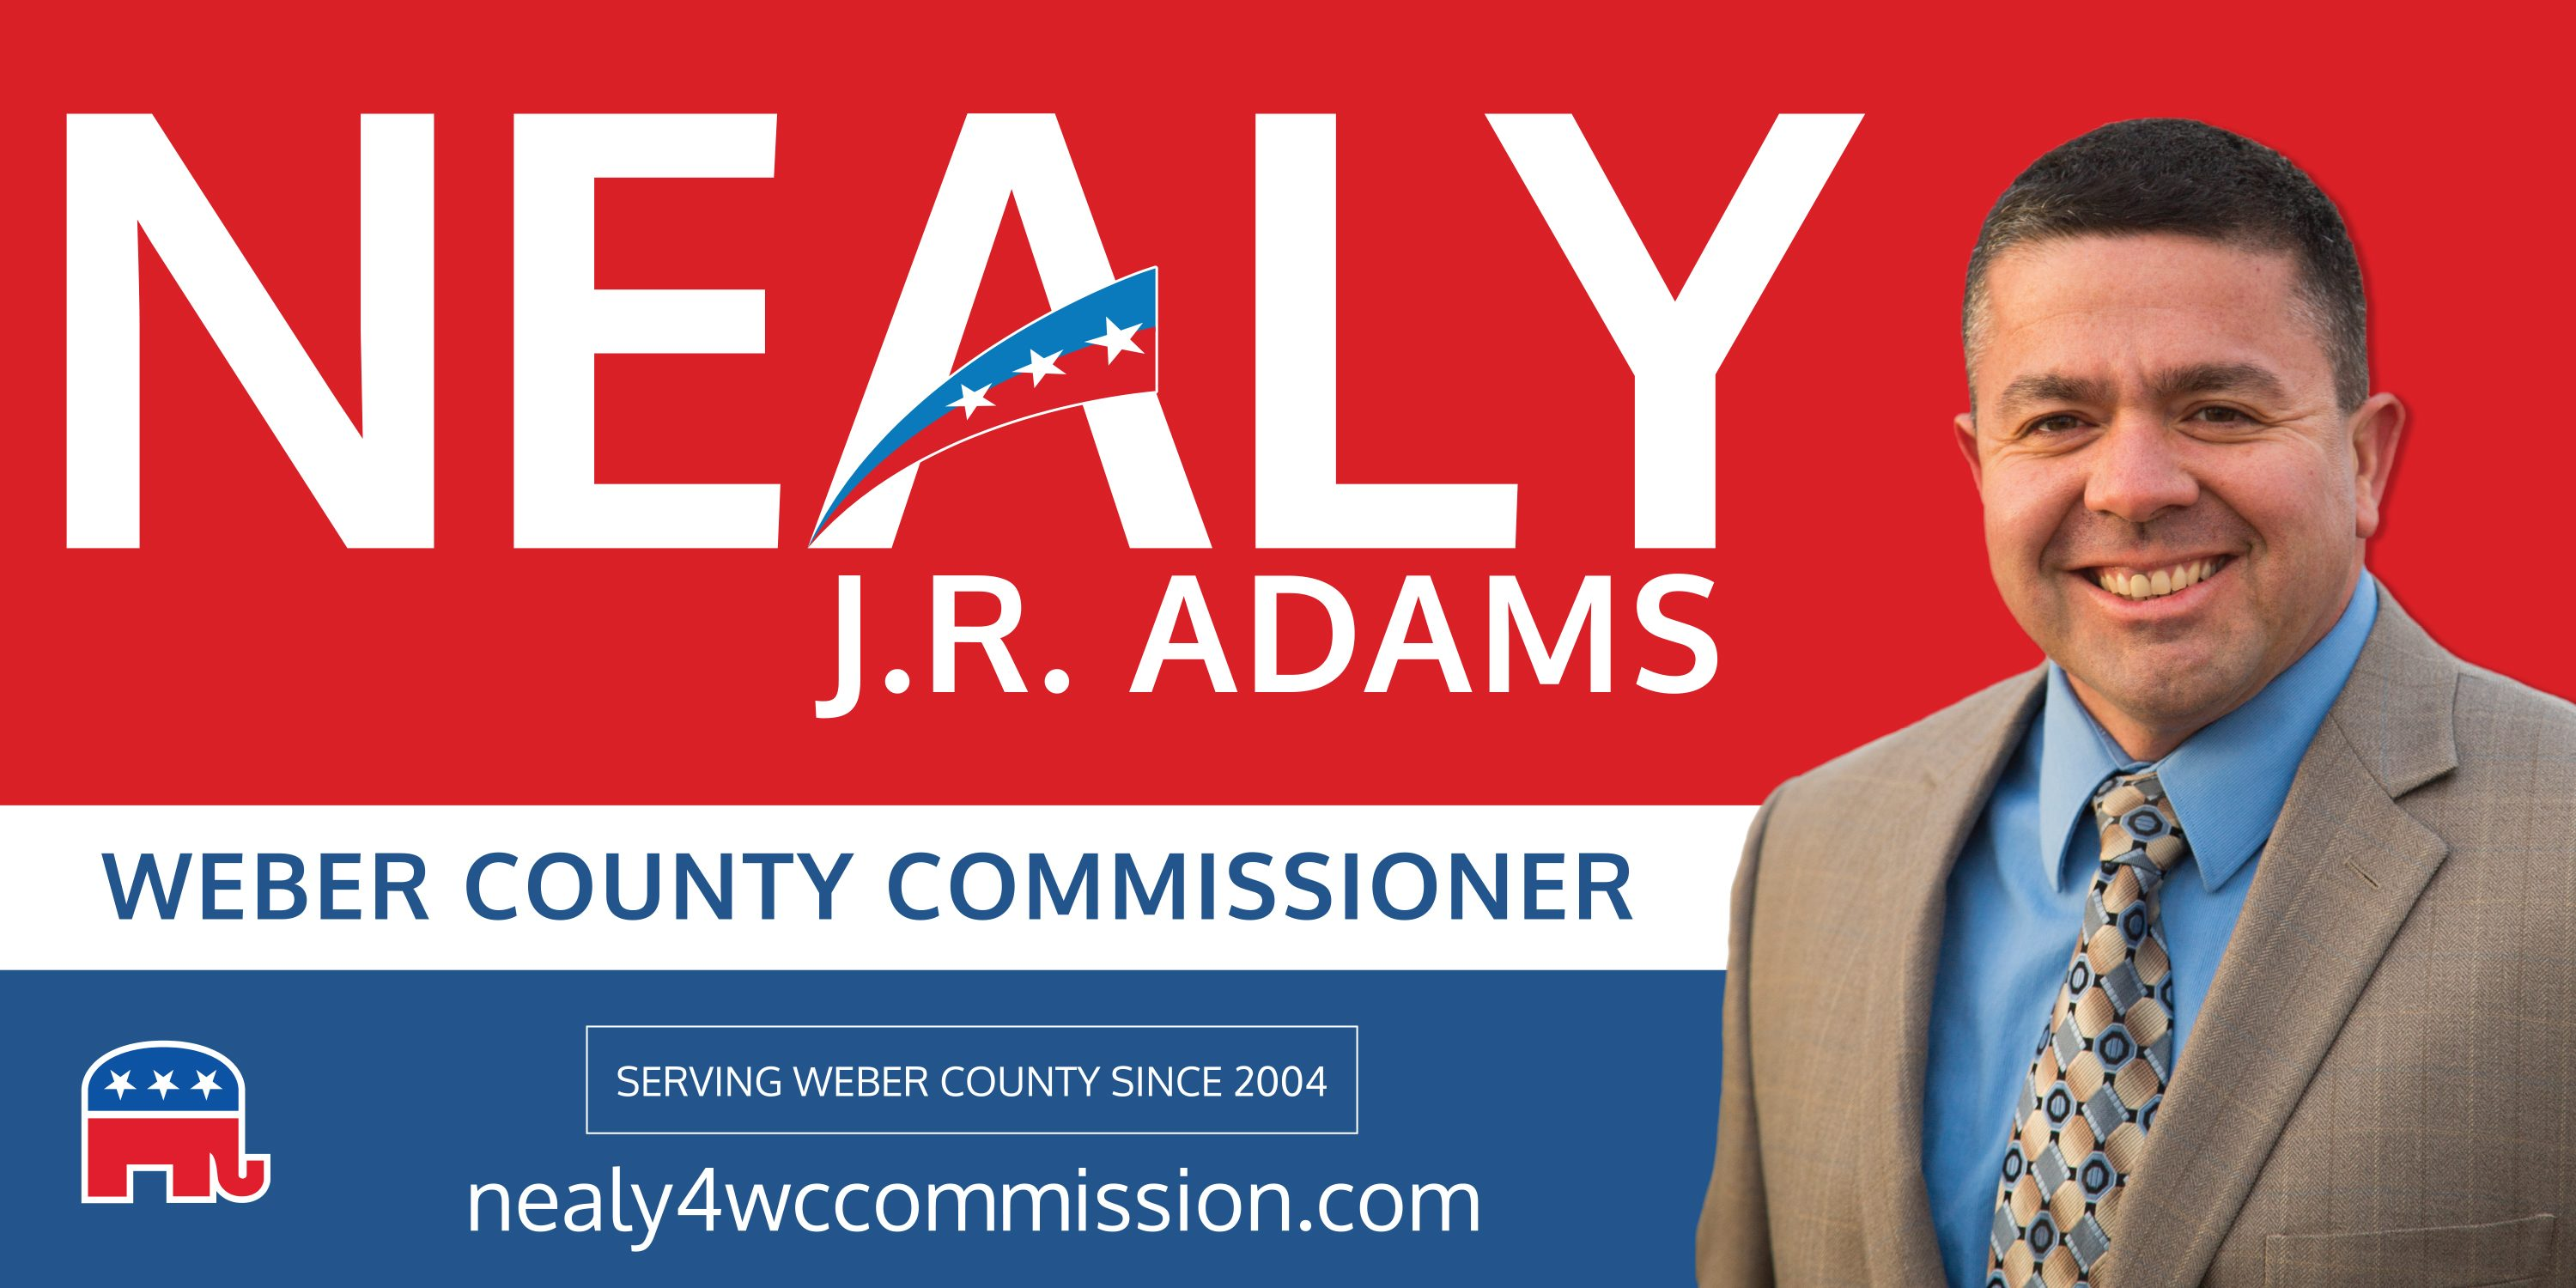 Nealy J.R. Adams for Weber County Commissioner